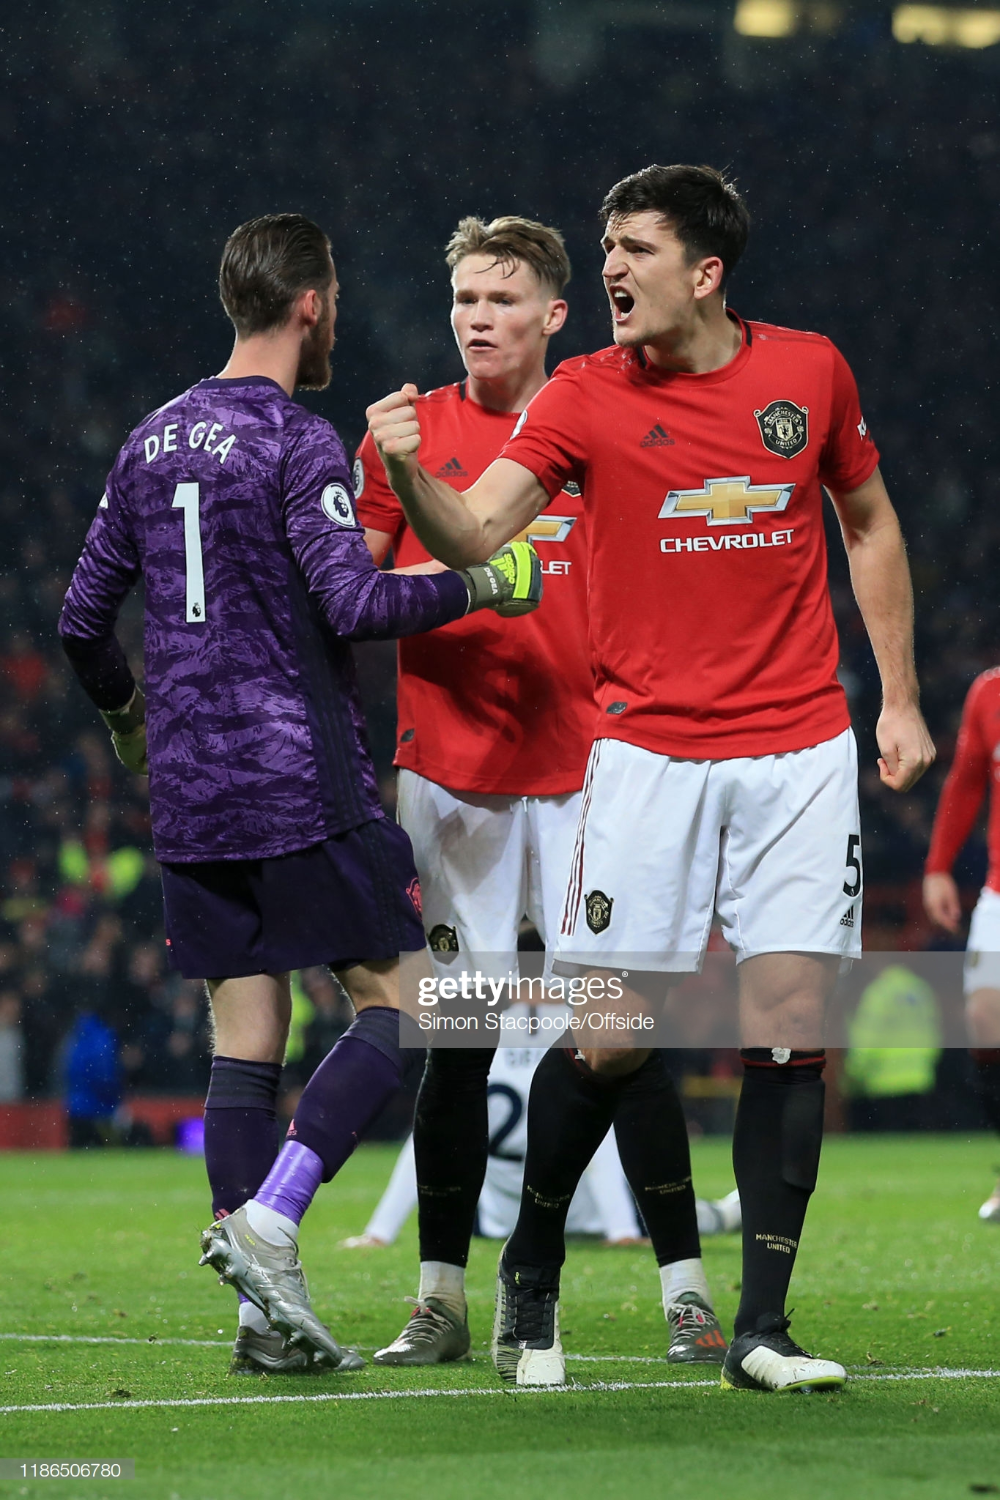 Harry Maguire Of Man Utd Celebrates Victory Along With Man Utd Manchester United Team Premier League Matches Manchester United